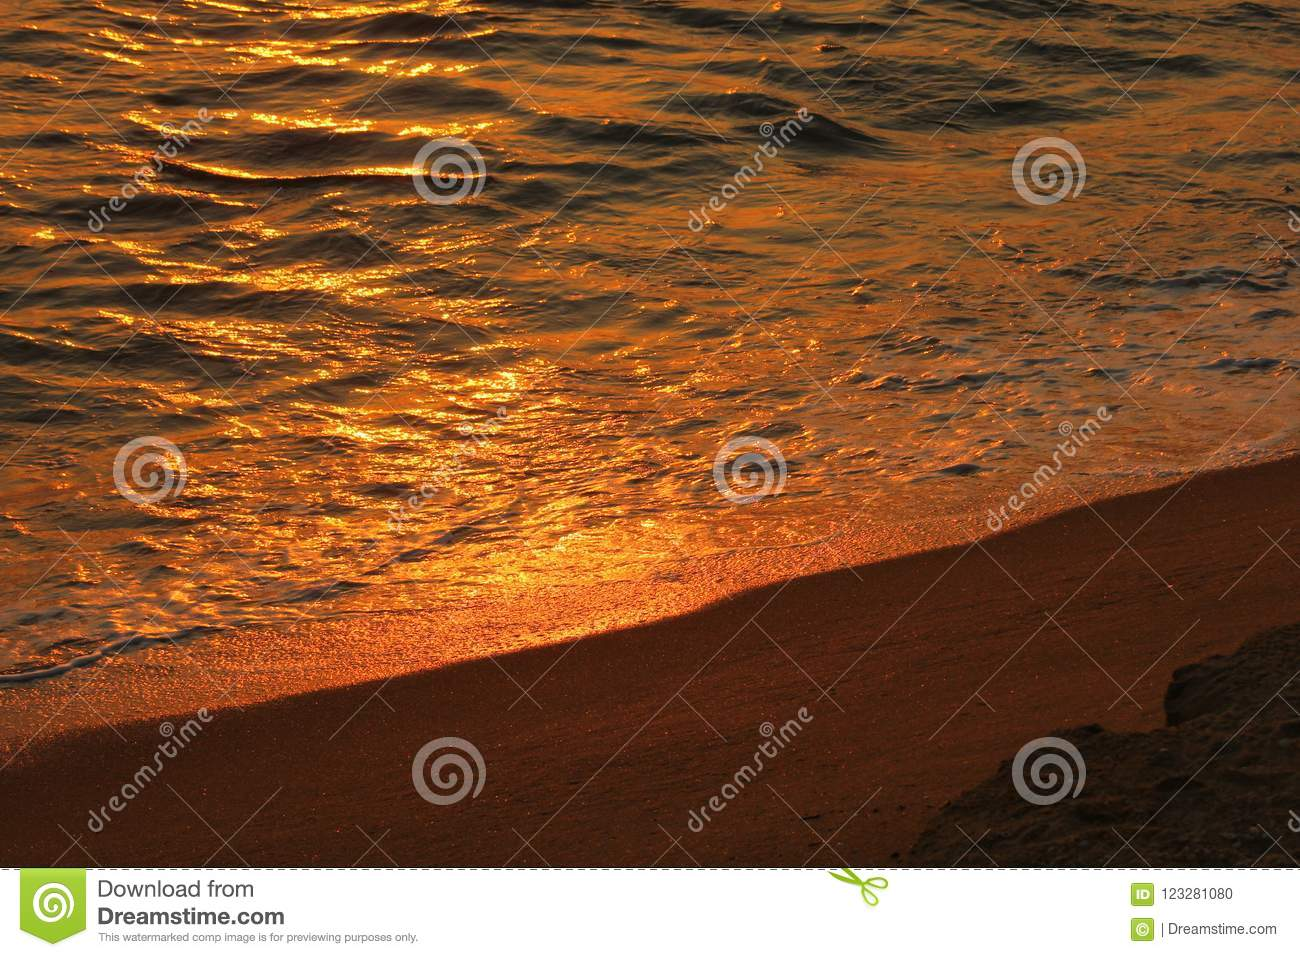 Sun set with water and sand ,Gall-face, Sri lanka,